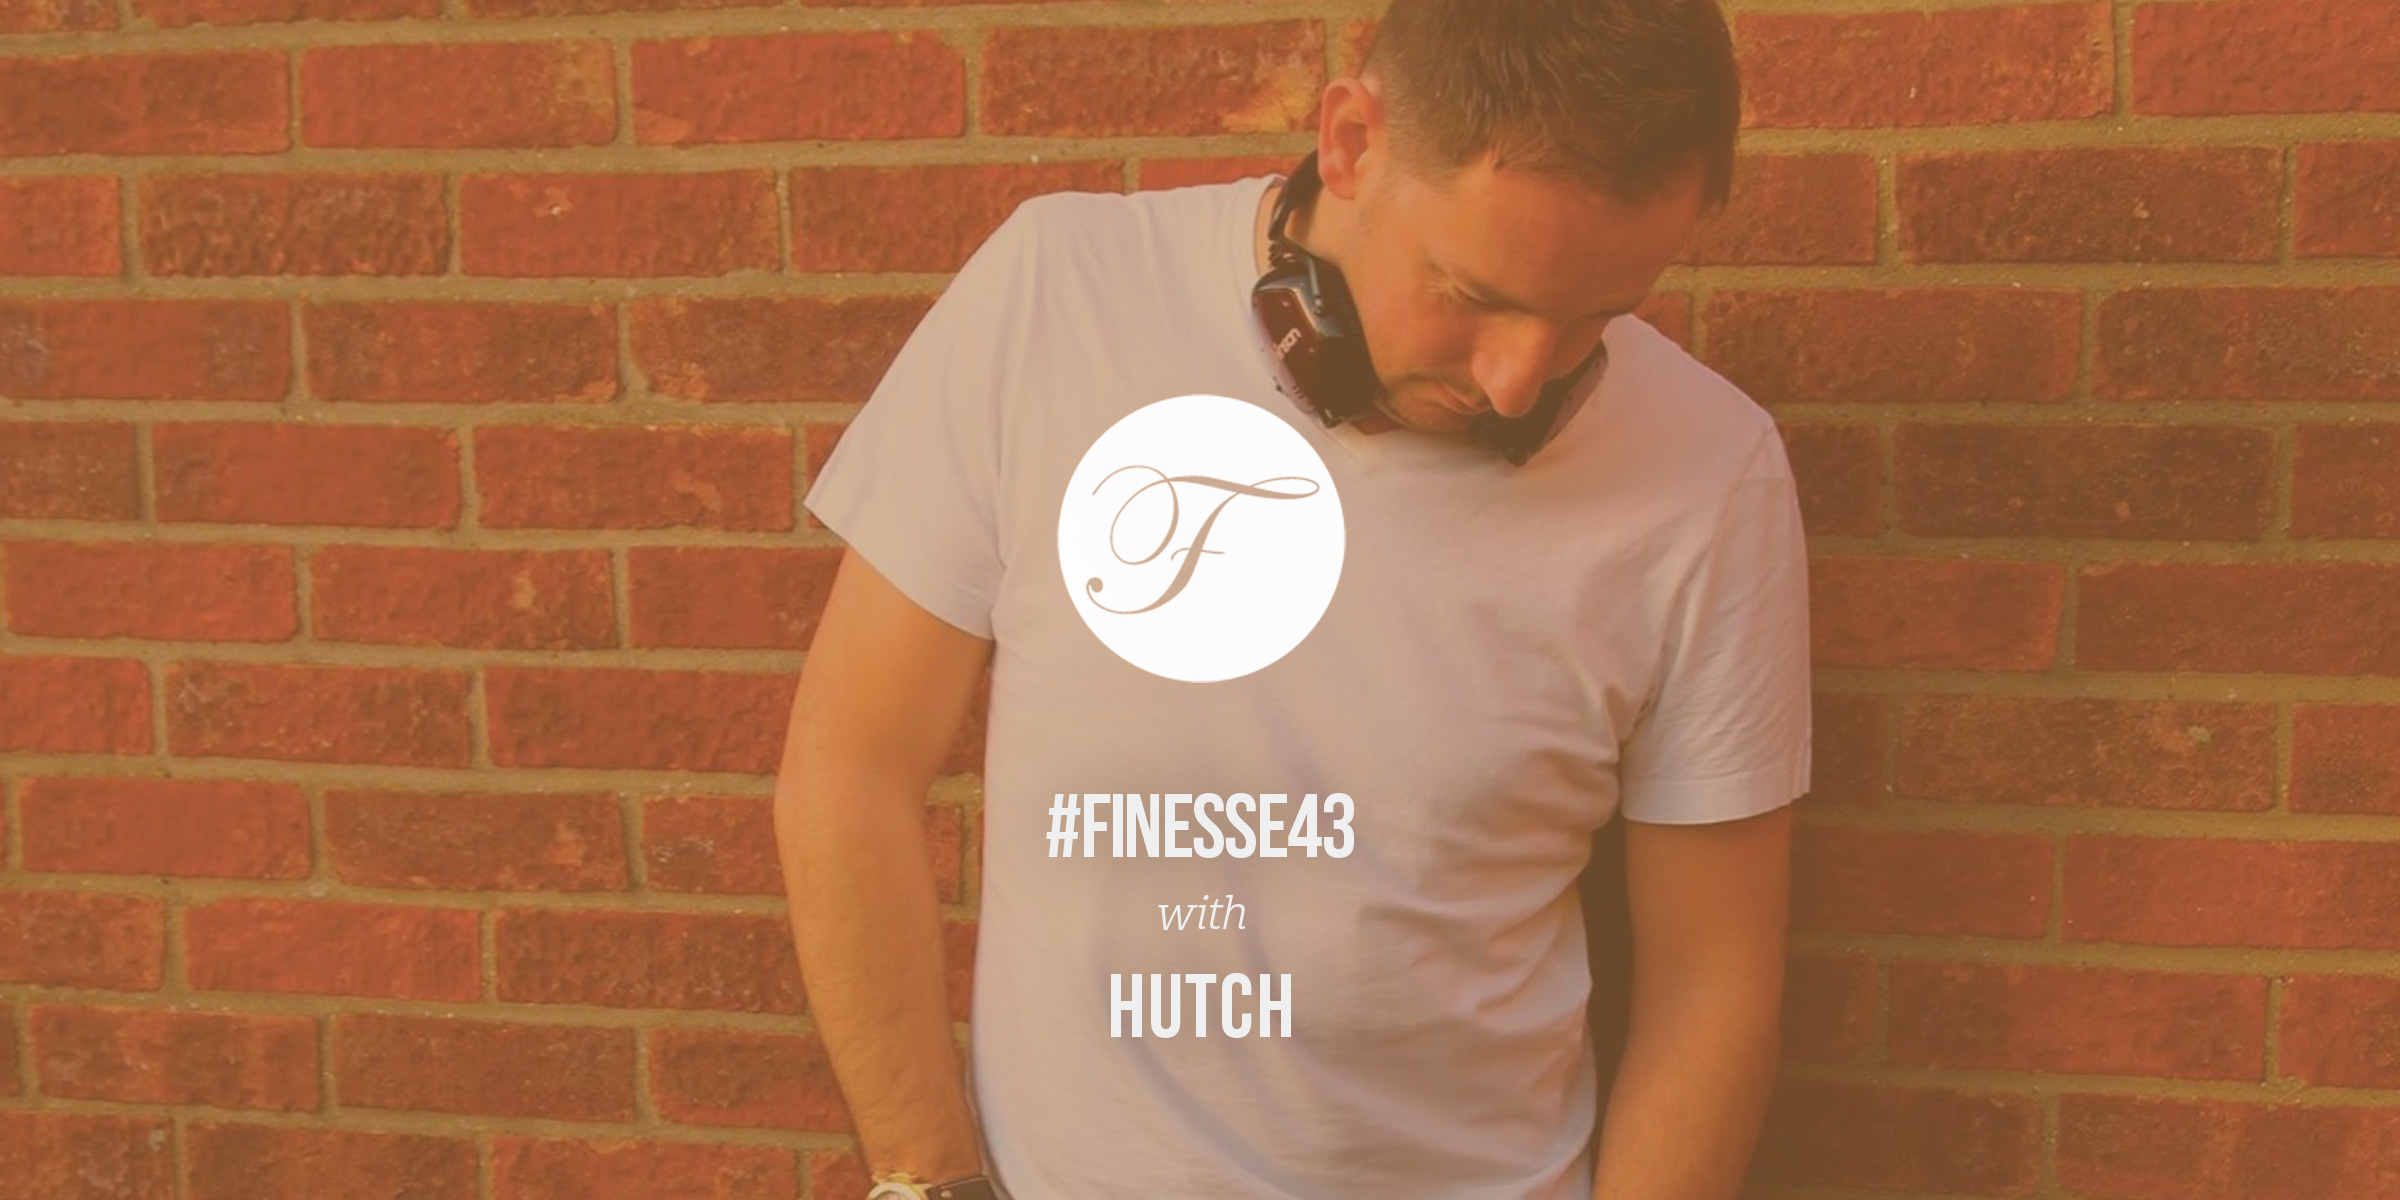 House Finesse 43 with Hutch